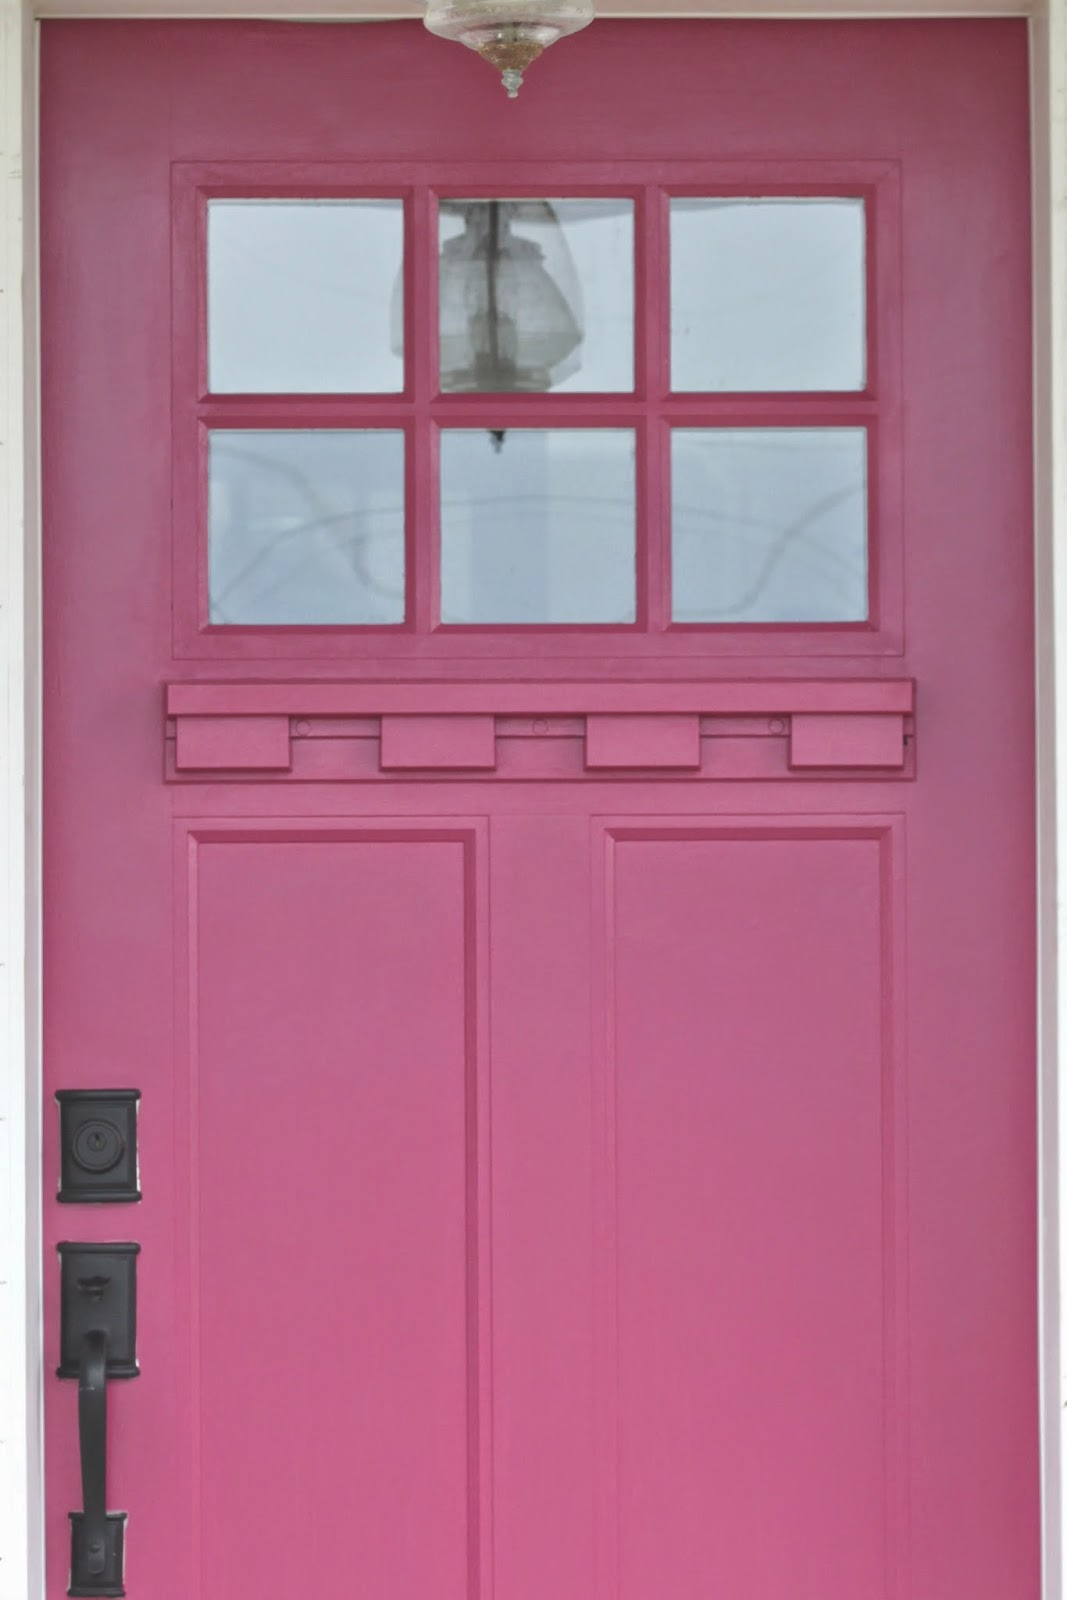 Maple Leaves & Sycamore Trees: The Day I Painted Our Door Pink